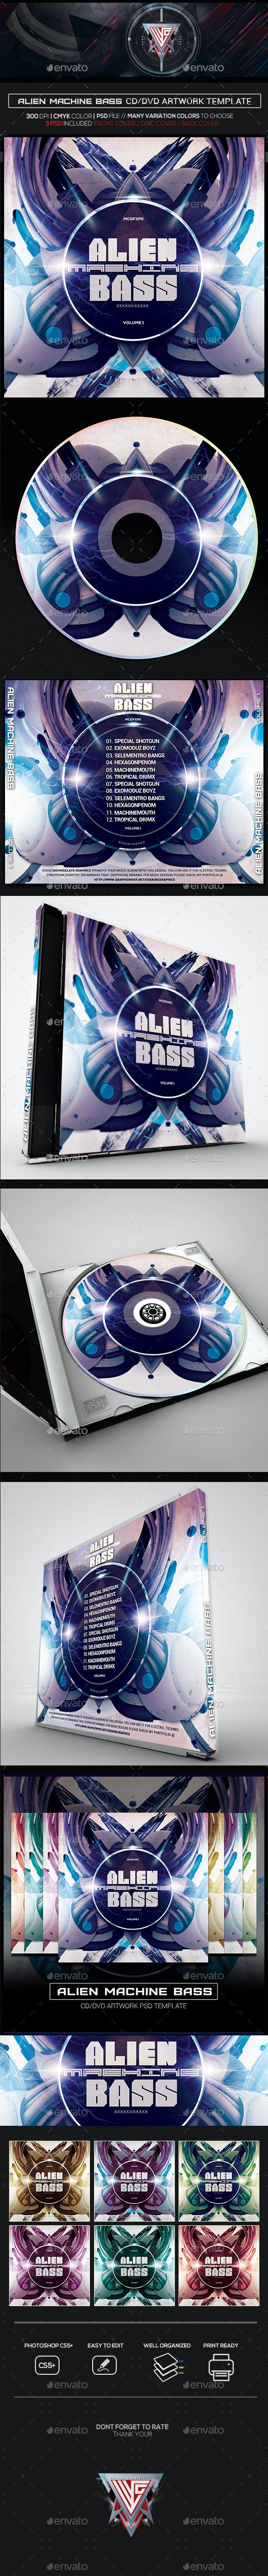 Alien Machine Bass Photoshop CD/DVD Template - CD & DVD Artwork Print Templates